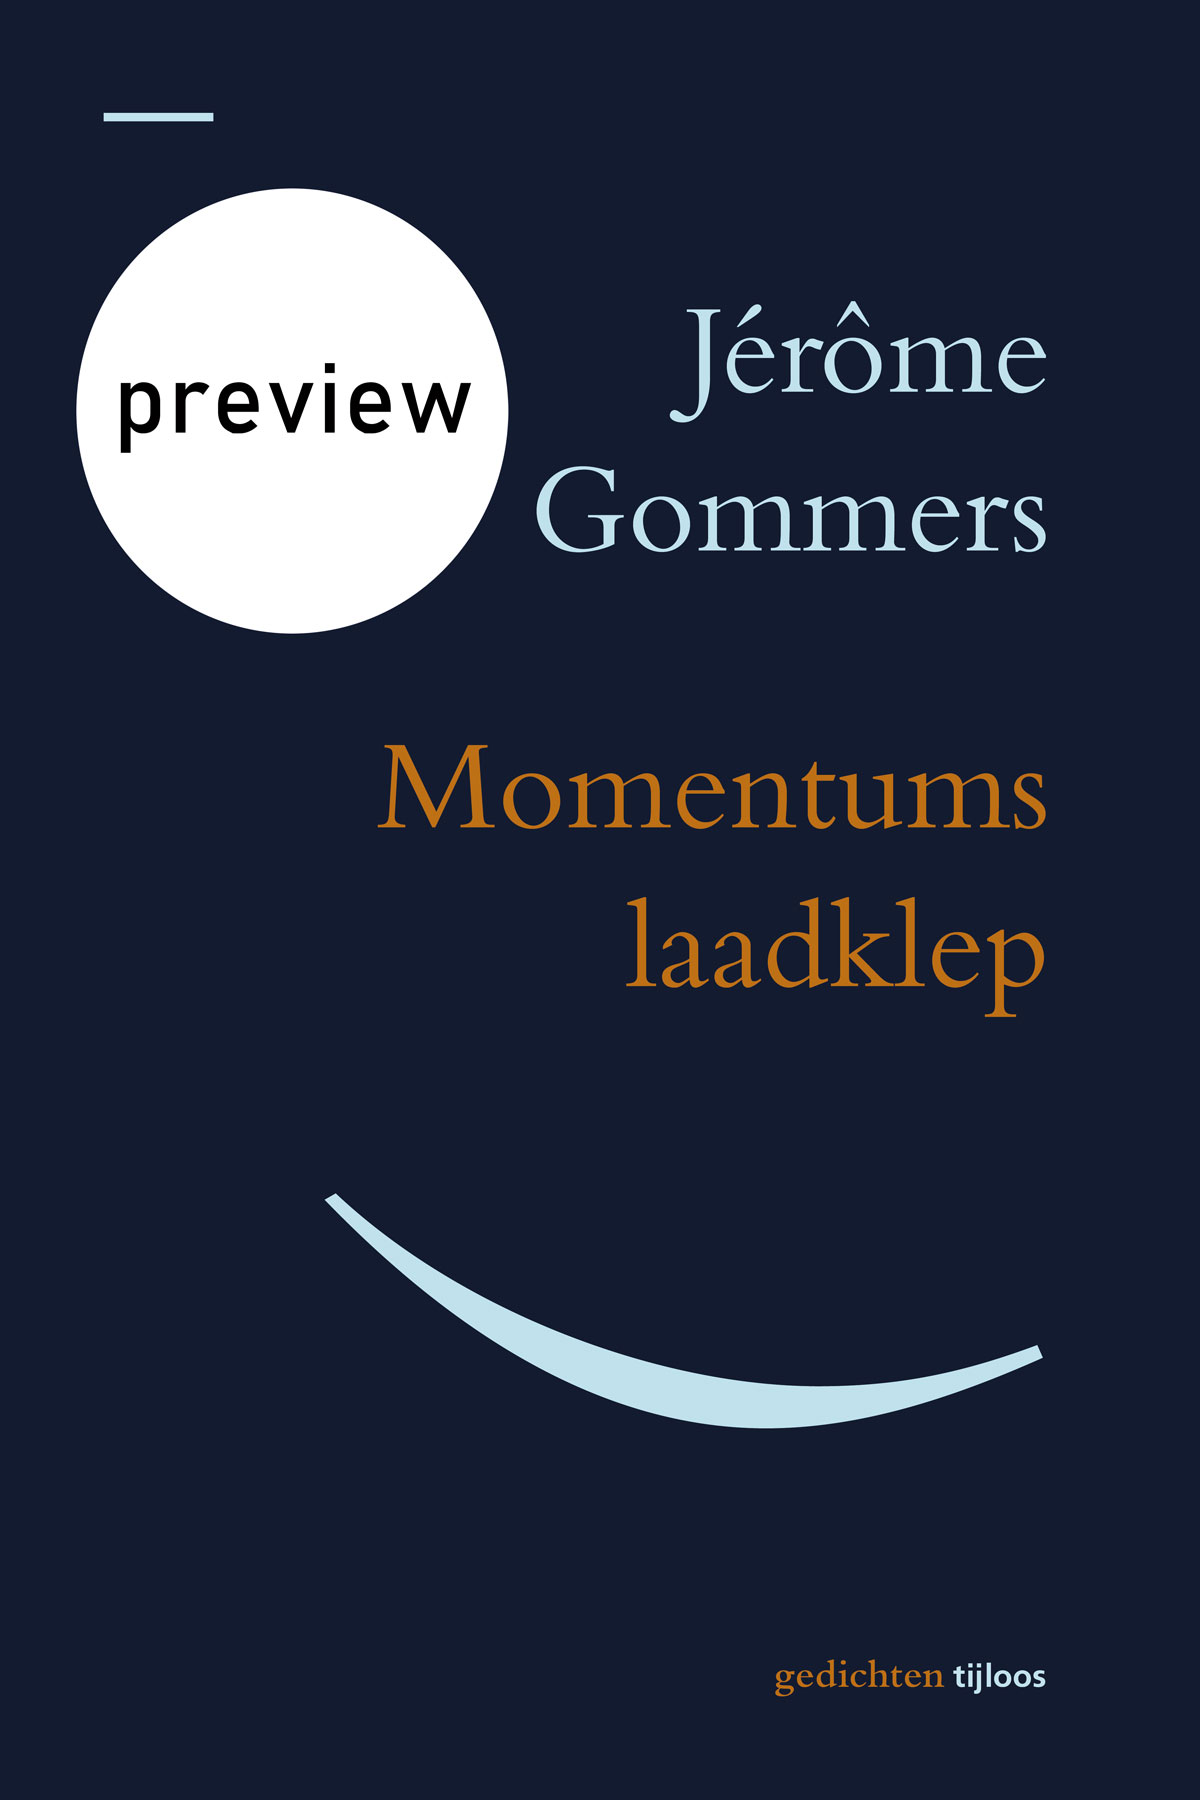 Preview Momentums Laadklep